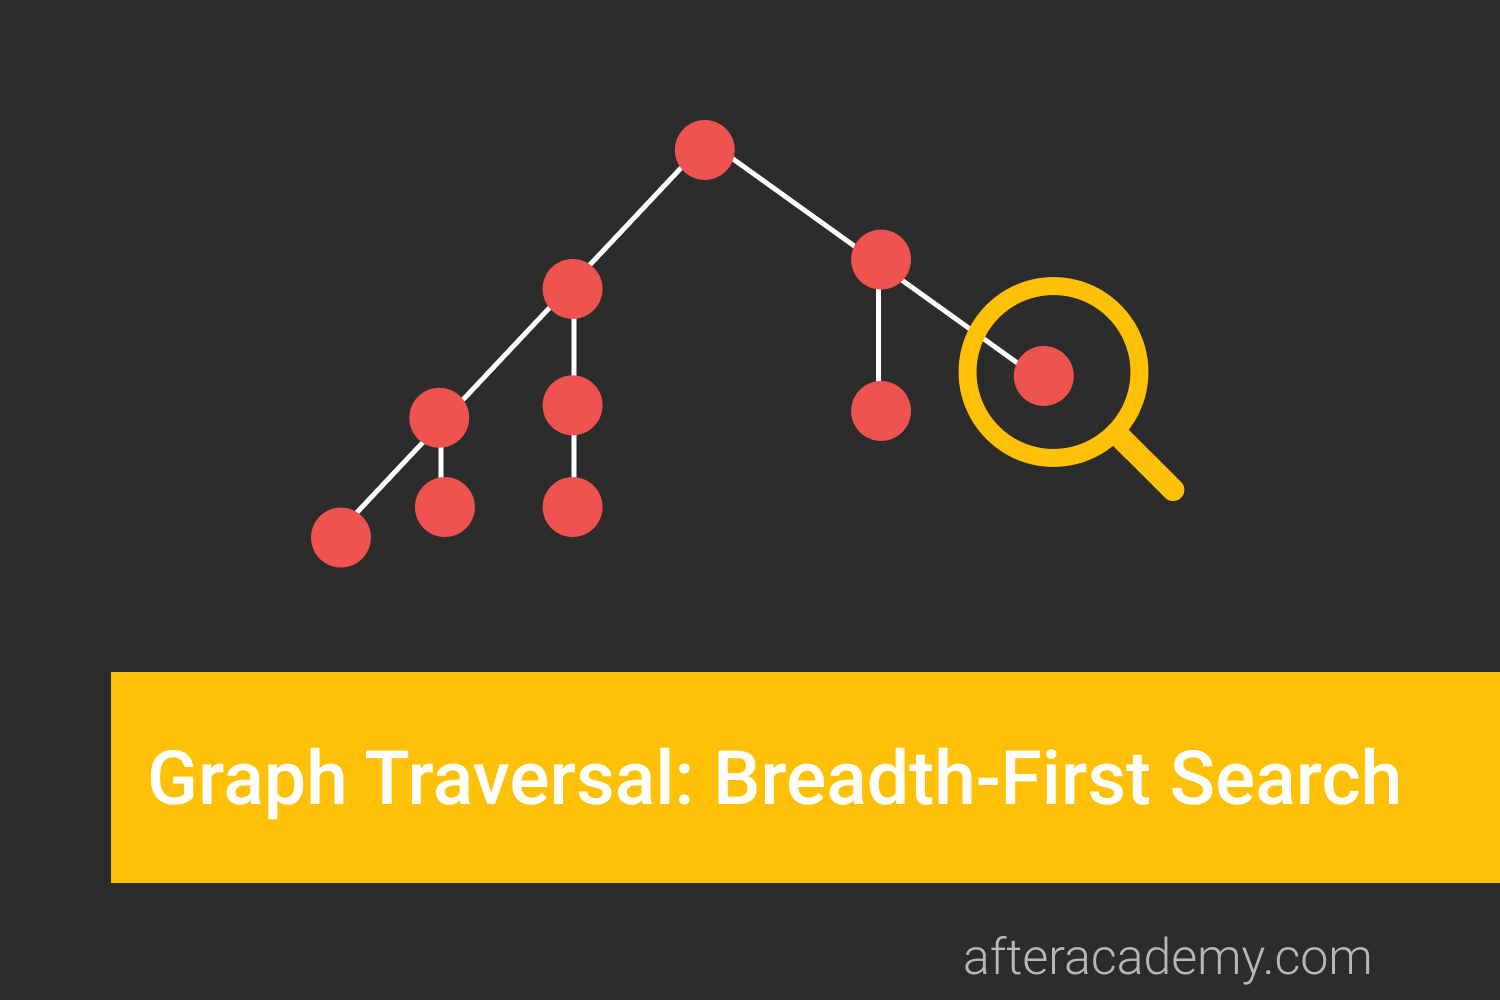 Graph Traversal: Breadth First Search